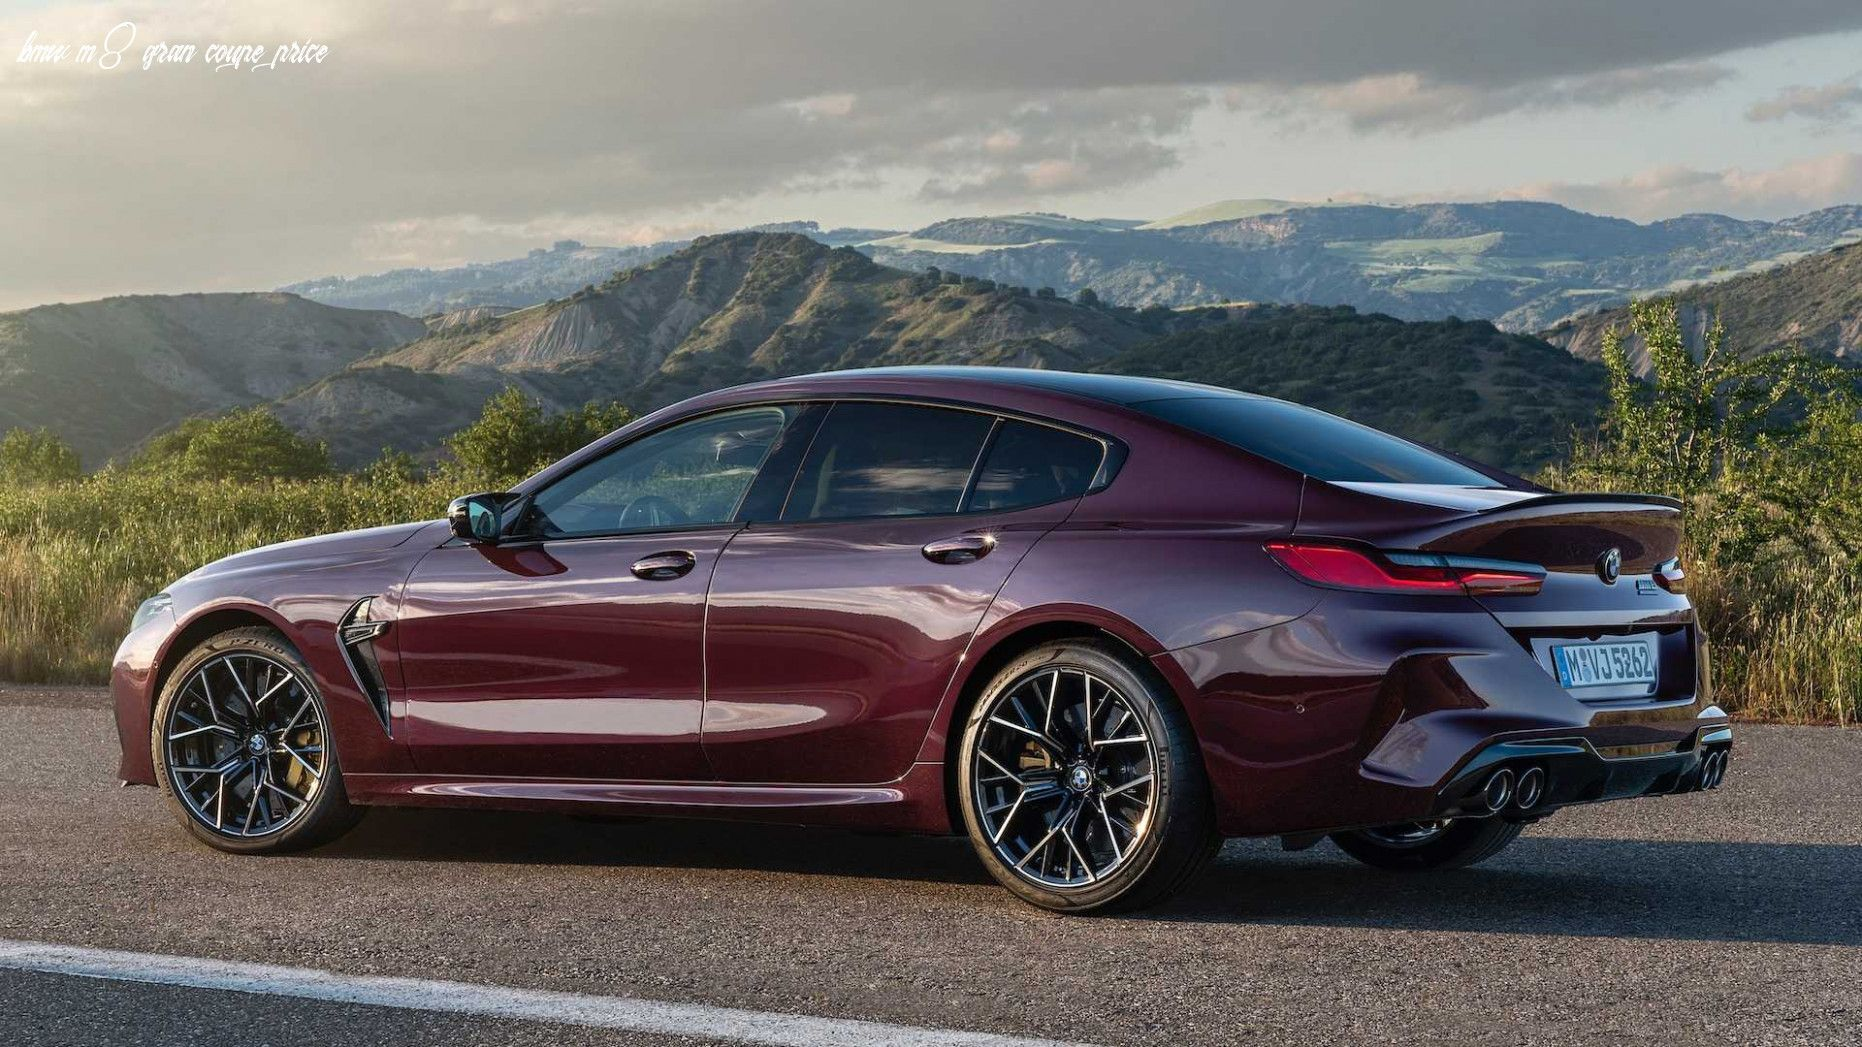 Bmw M8 Gran Coupe Price In 2020 Bmw Gran Coupe Coupe